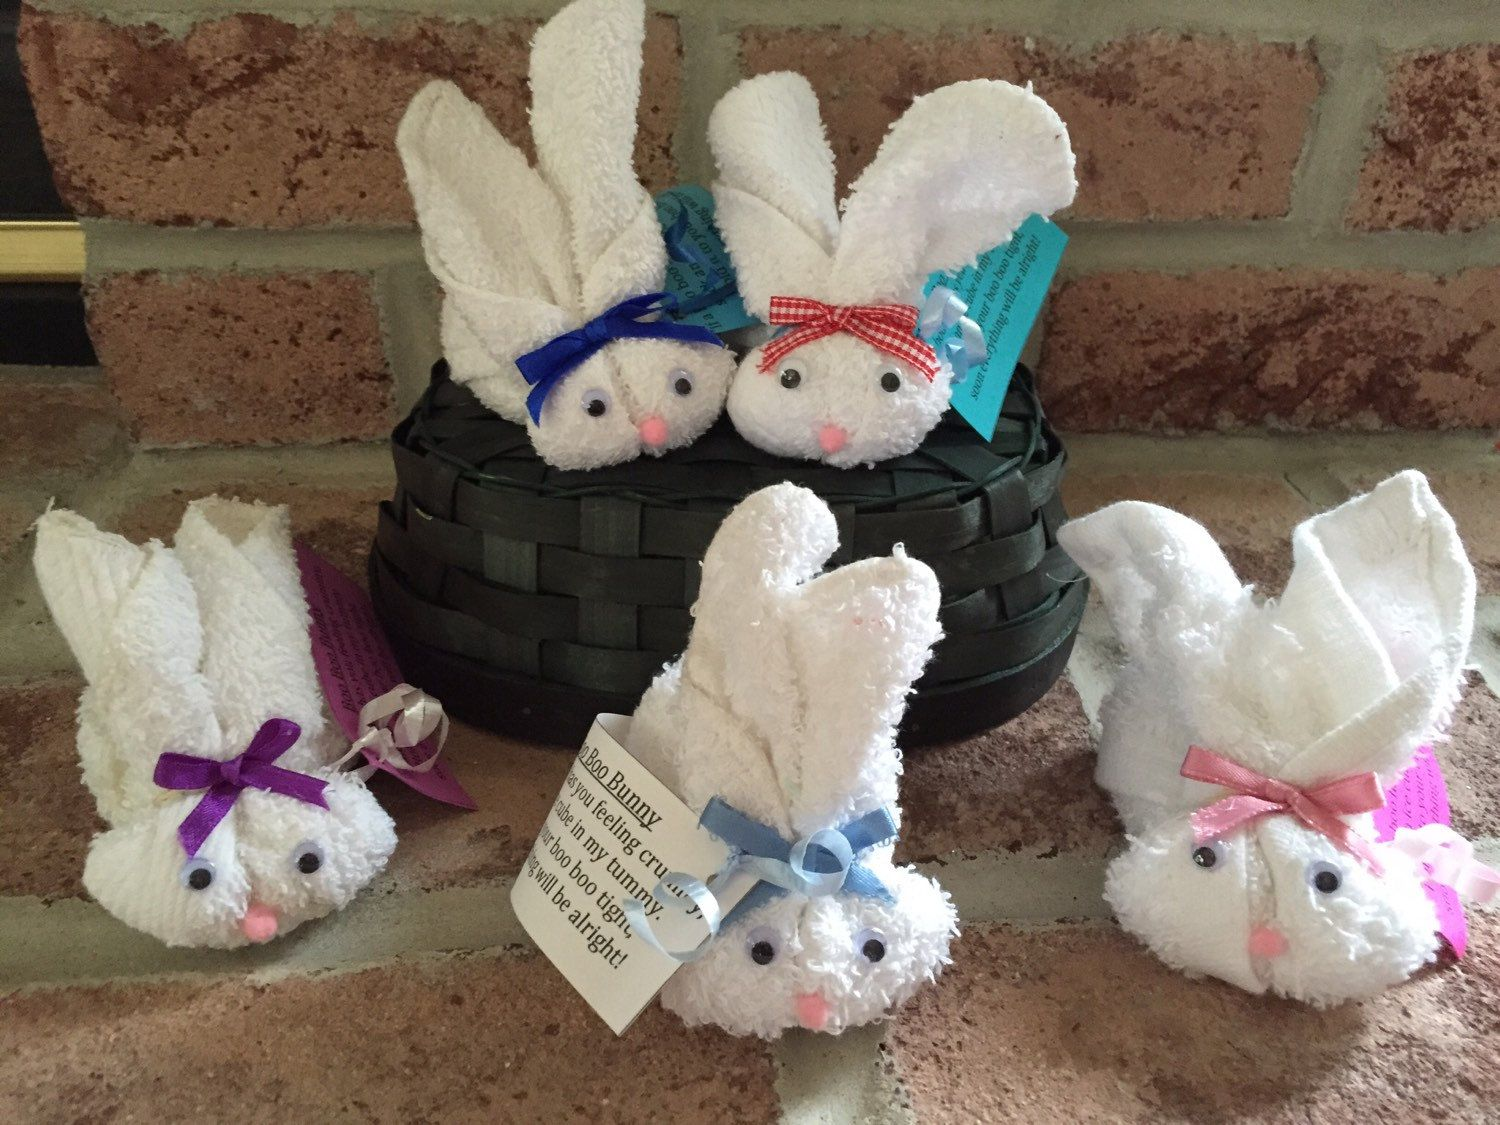 White boo boo bunny set of 3 woodland baby shower favor gift white boo boo bunny set of 3 woodland baby shower favor gift cold ice pack mommy to be easter gift stocking stuffer gender neutral negle Gallery